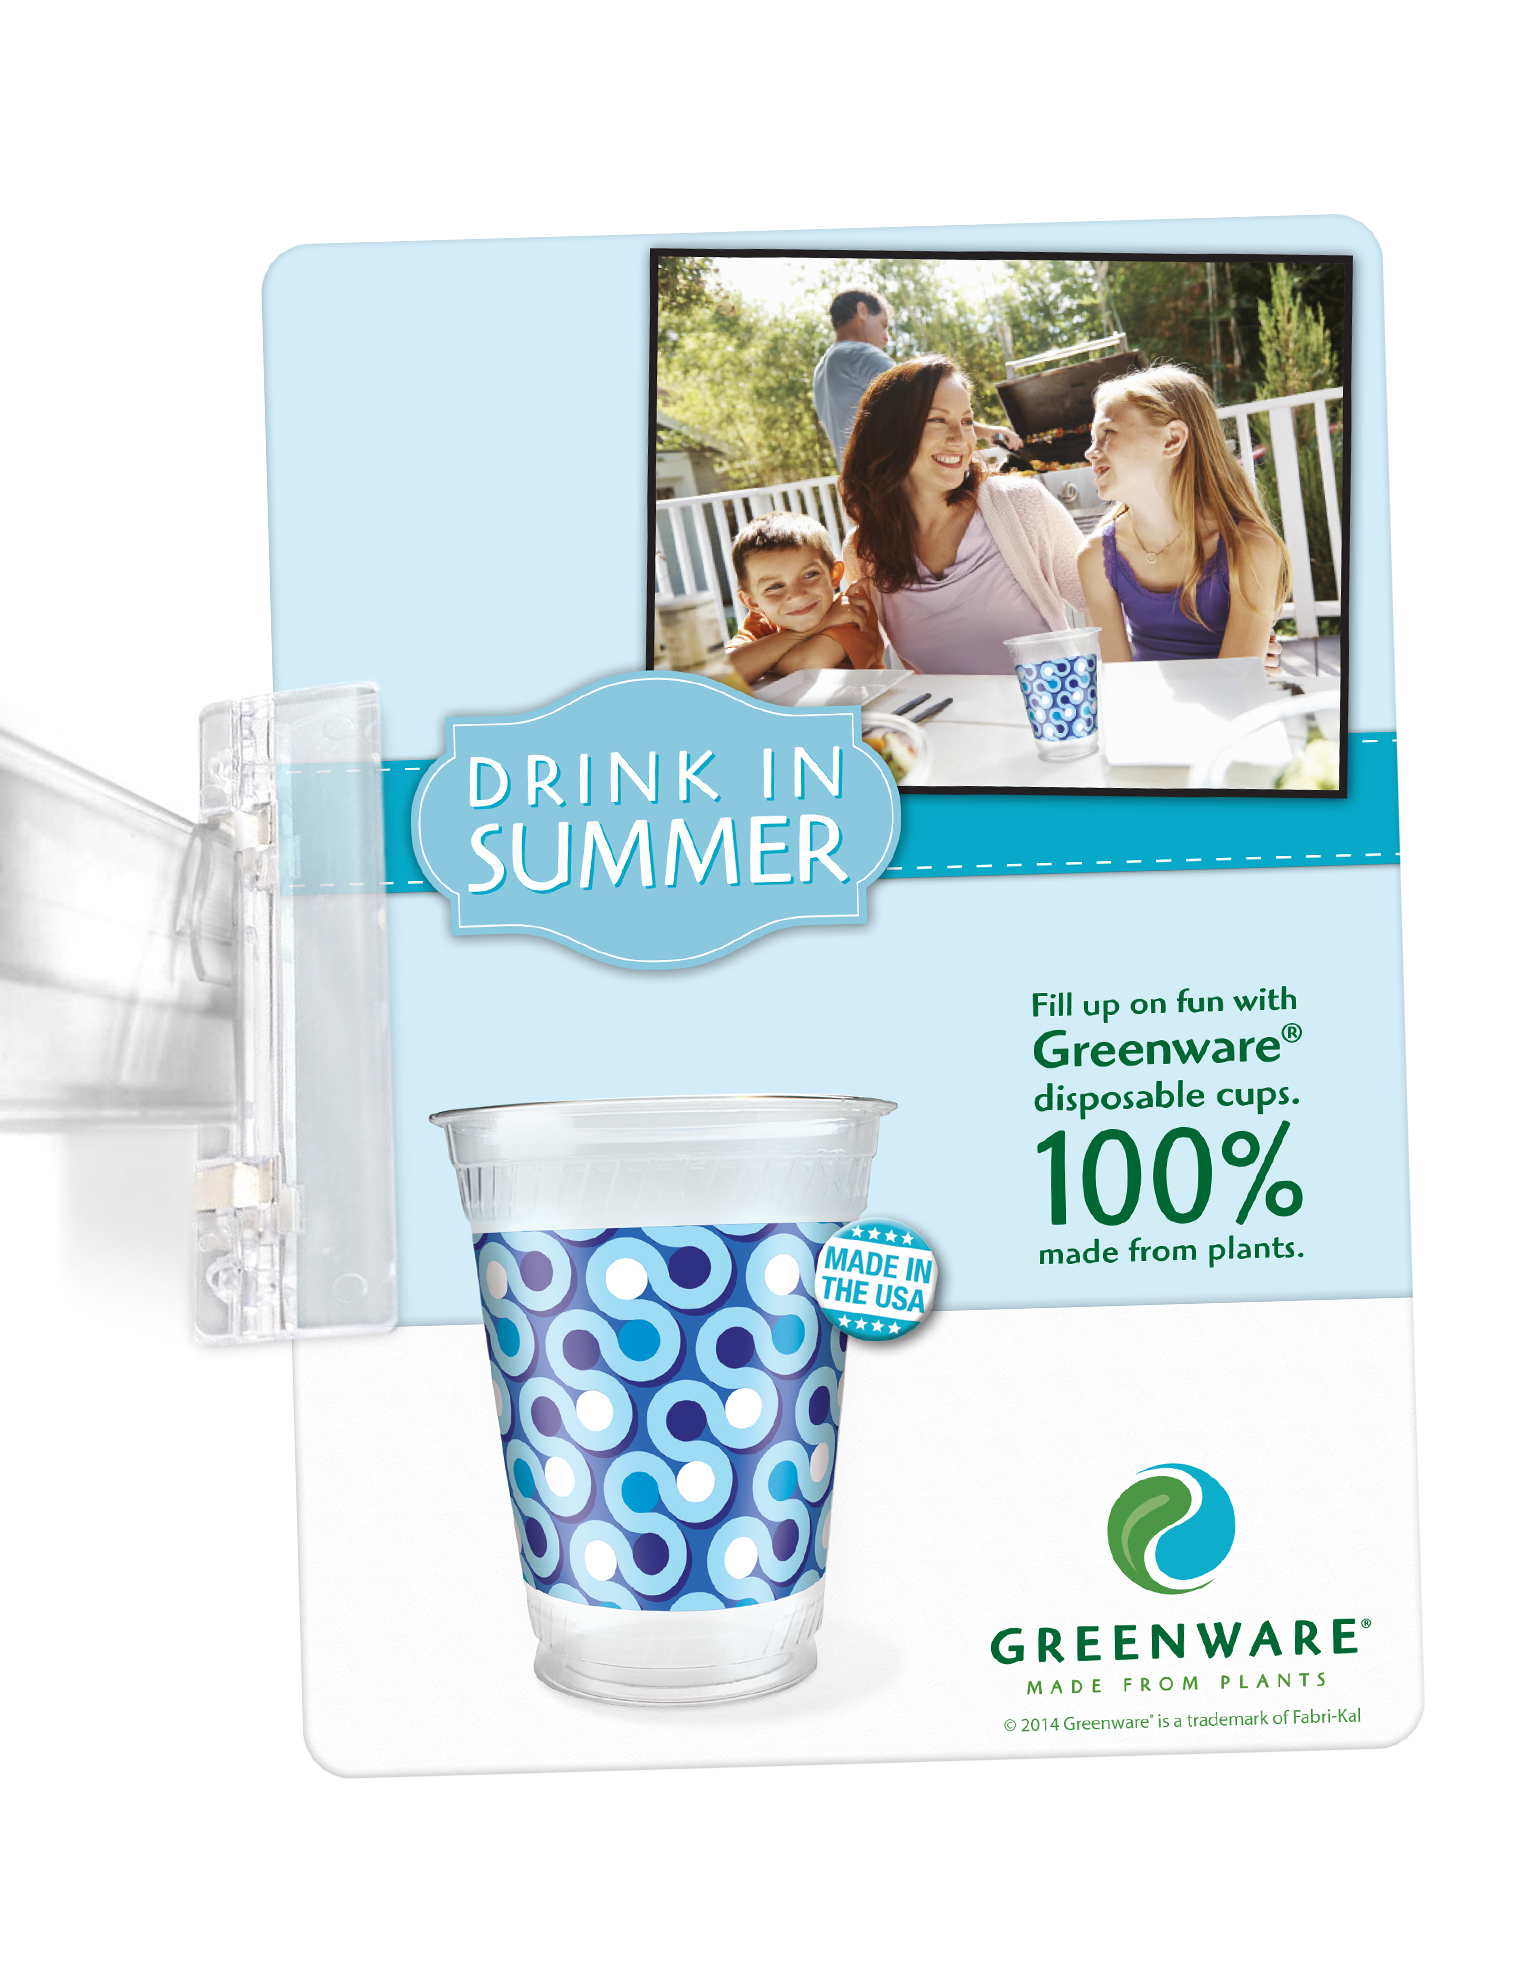 2014 Kroger in-store shelf talker ad placed next to Greenware cup sleeves.